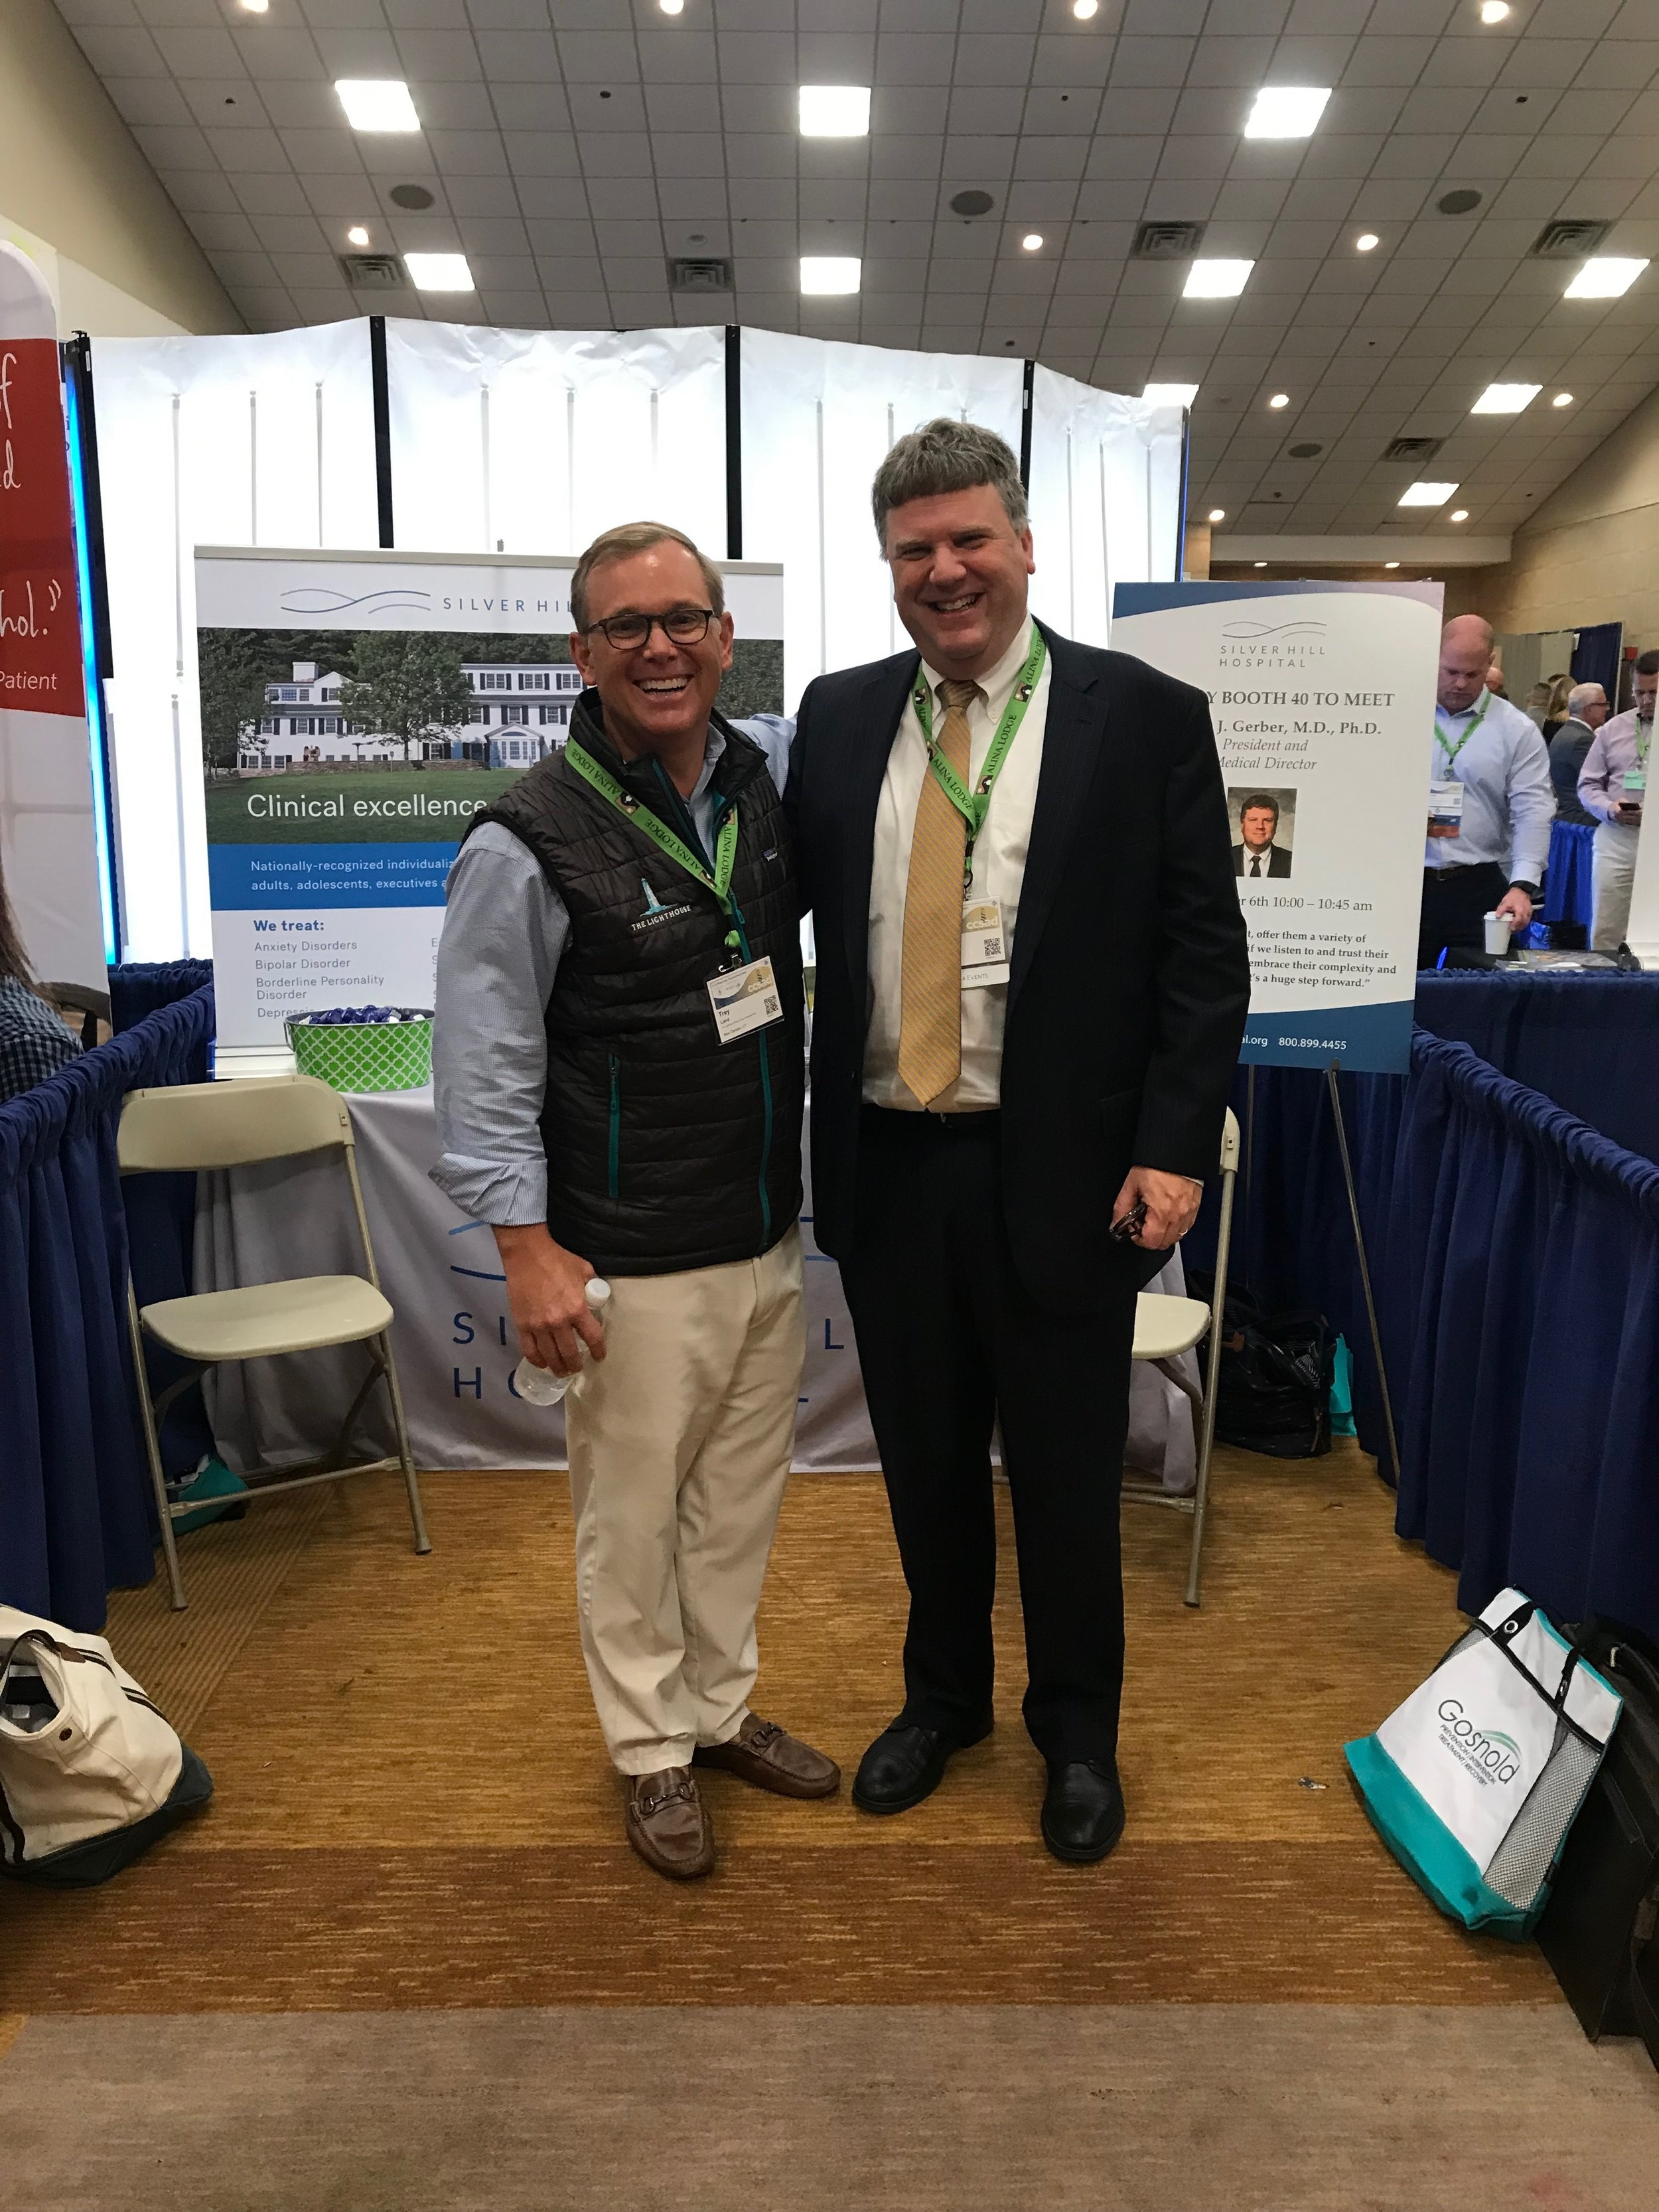 Trey Laird, The Lighthouse and Dr. Andrew Gerber, Medical Director and President Silver Hill Hospital.